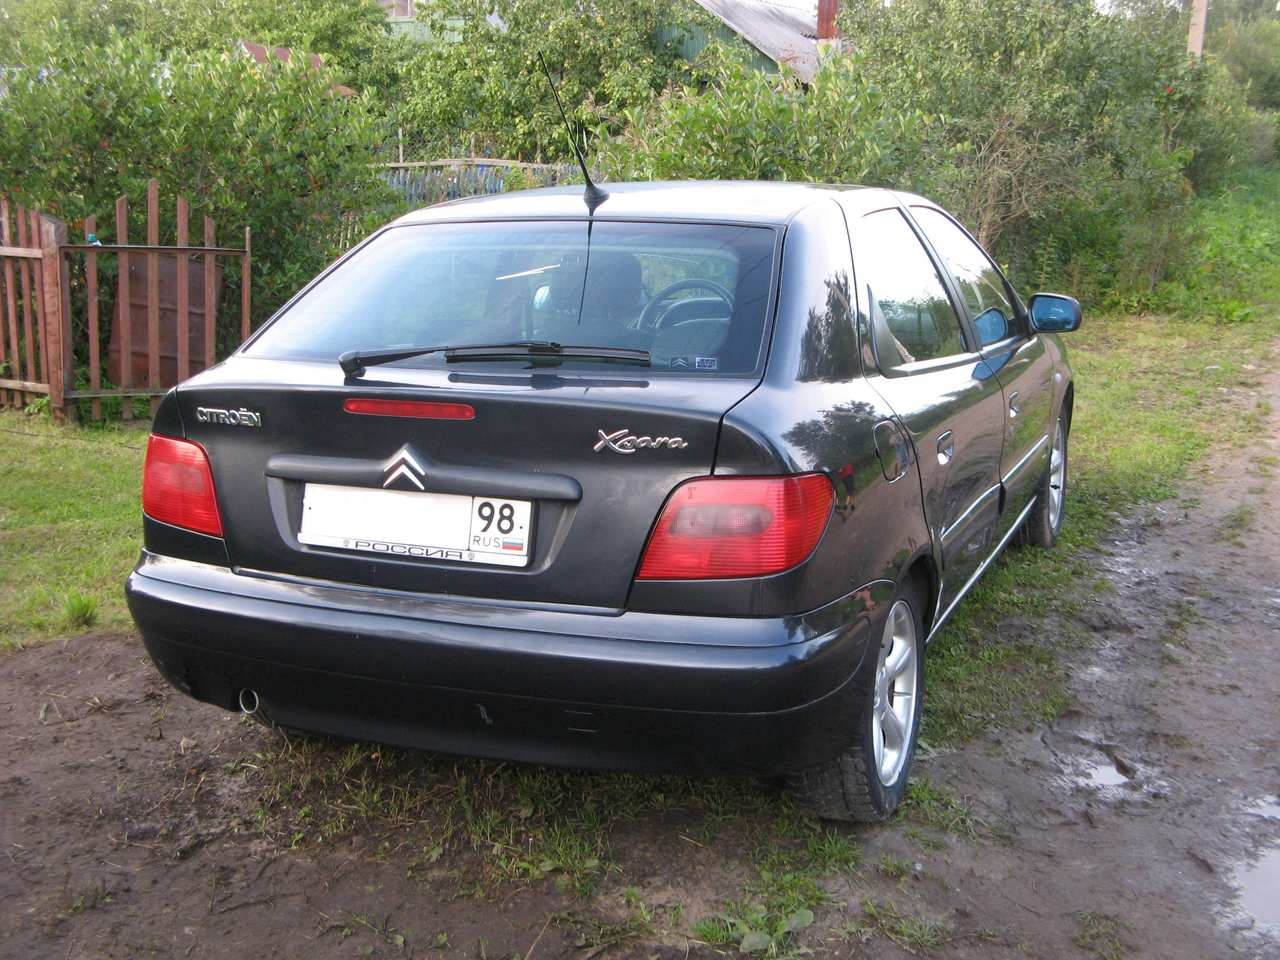 2002 citroen xsara photos 1 6 gasoline ff manual for sale. Black Bedroom Furniture Sets. Home Design Ideas